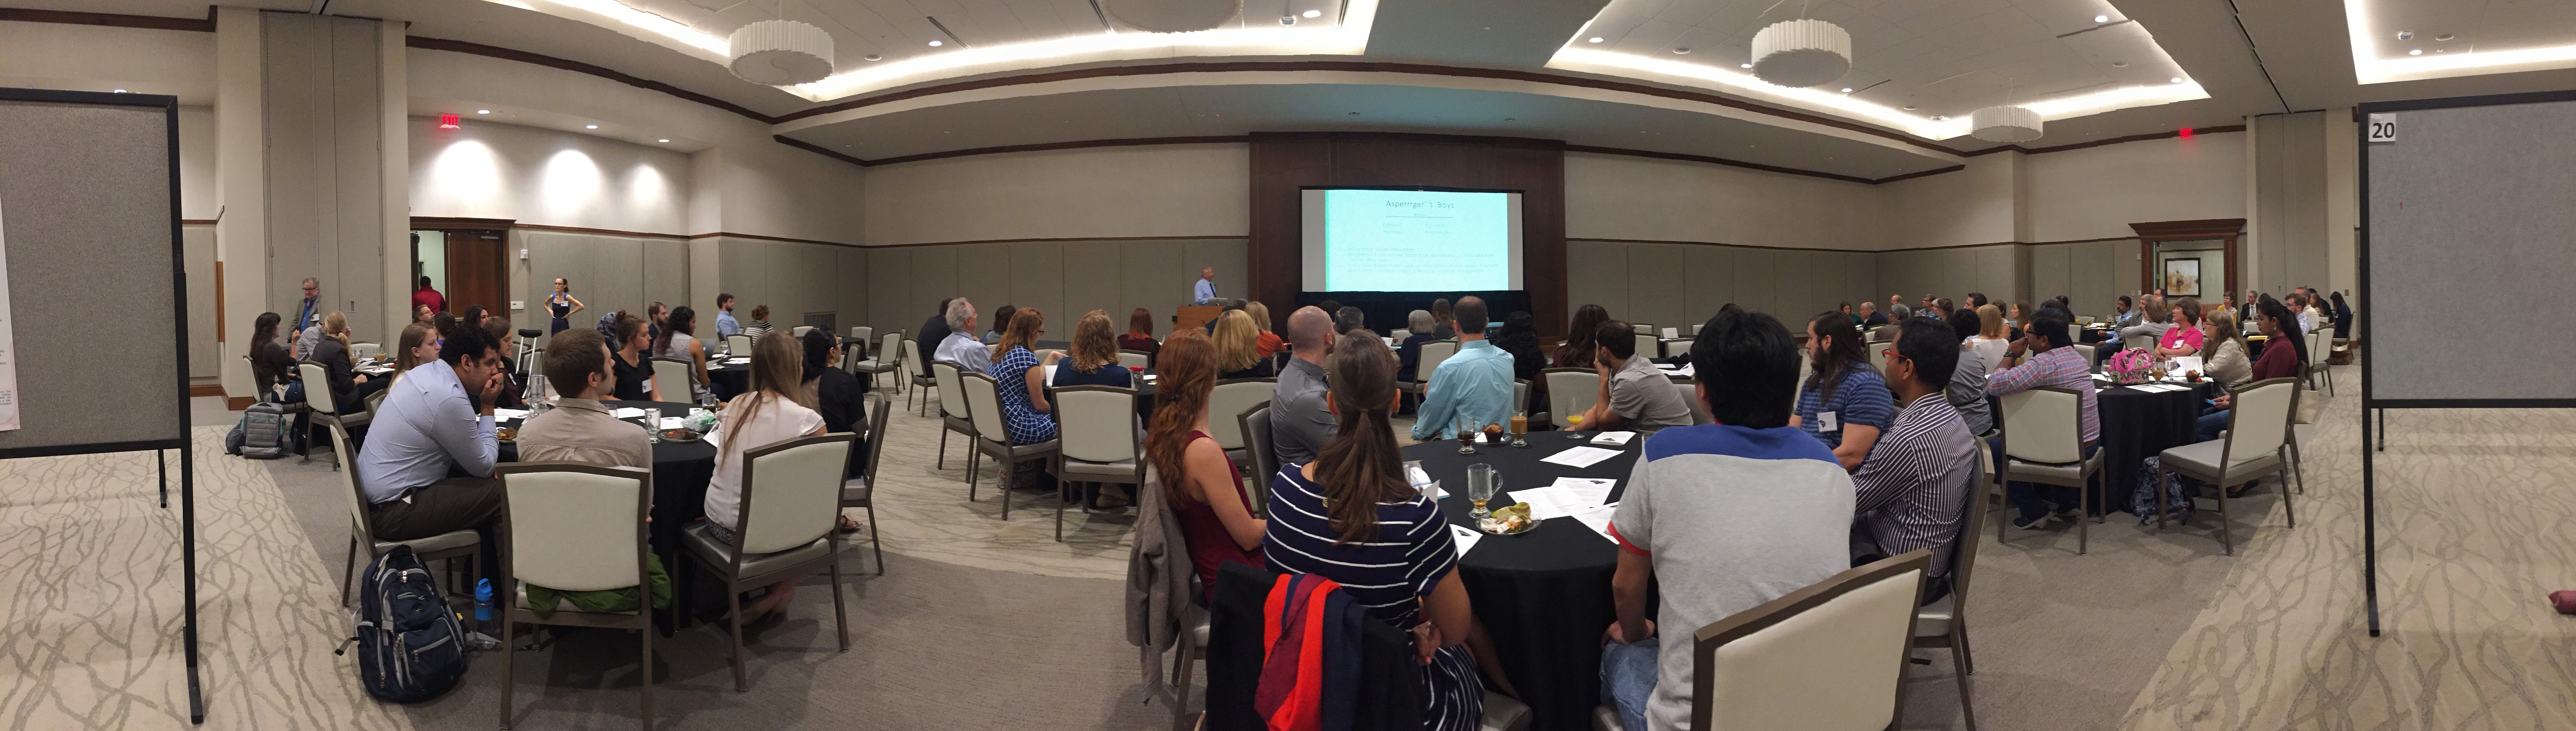 Image of the crowd at the 2017 SCAND Symposium in Charleson SC